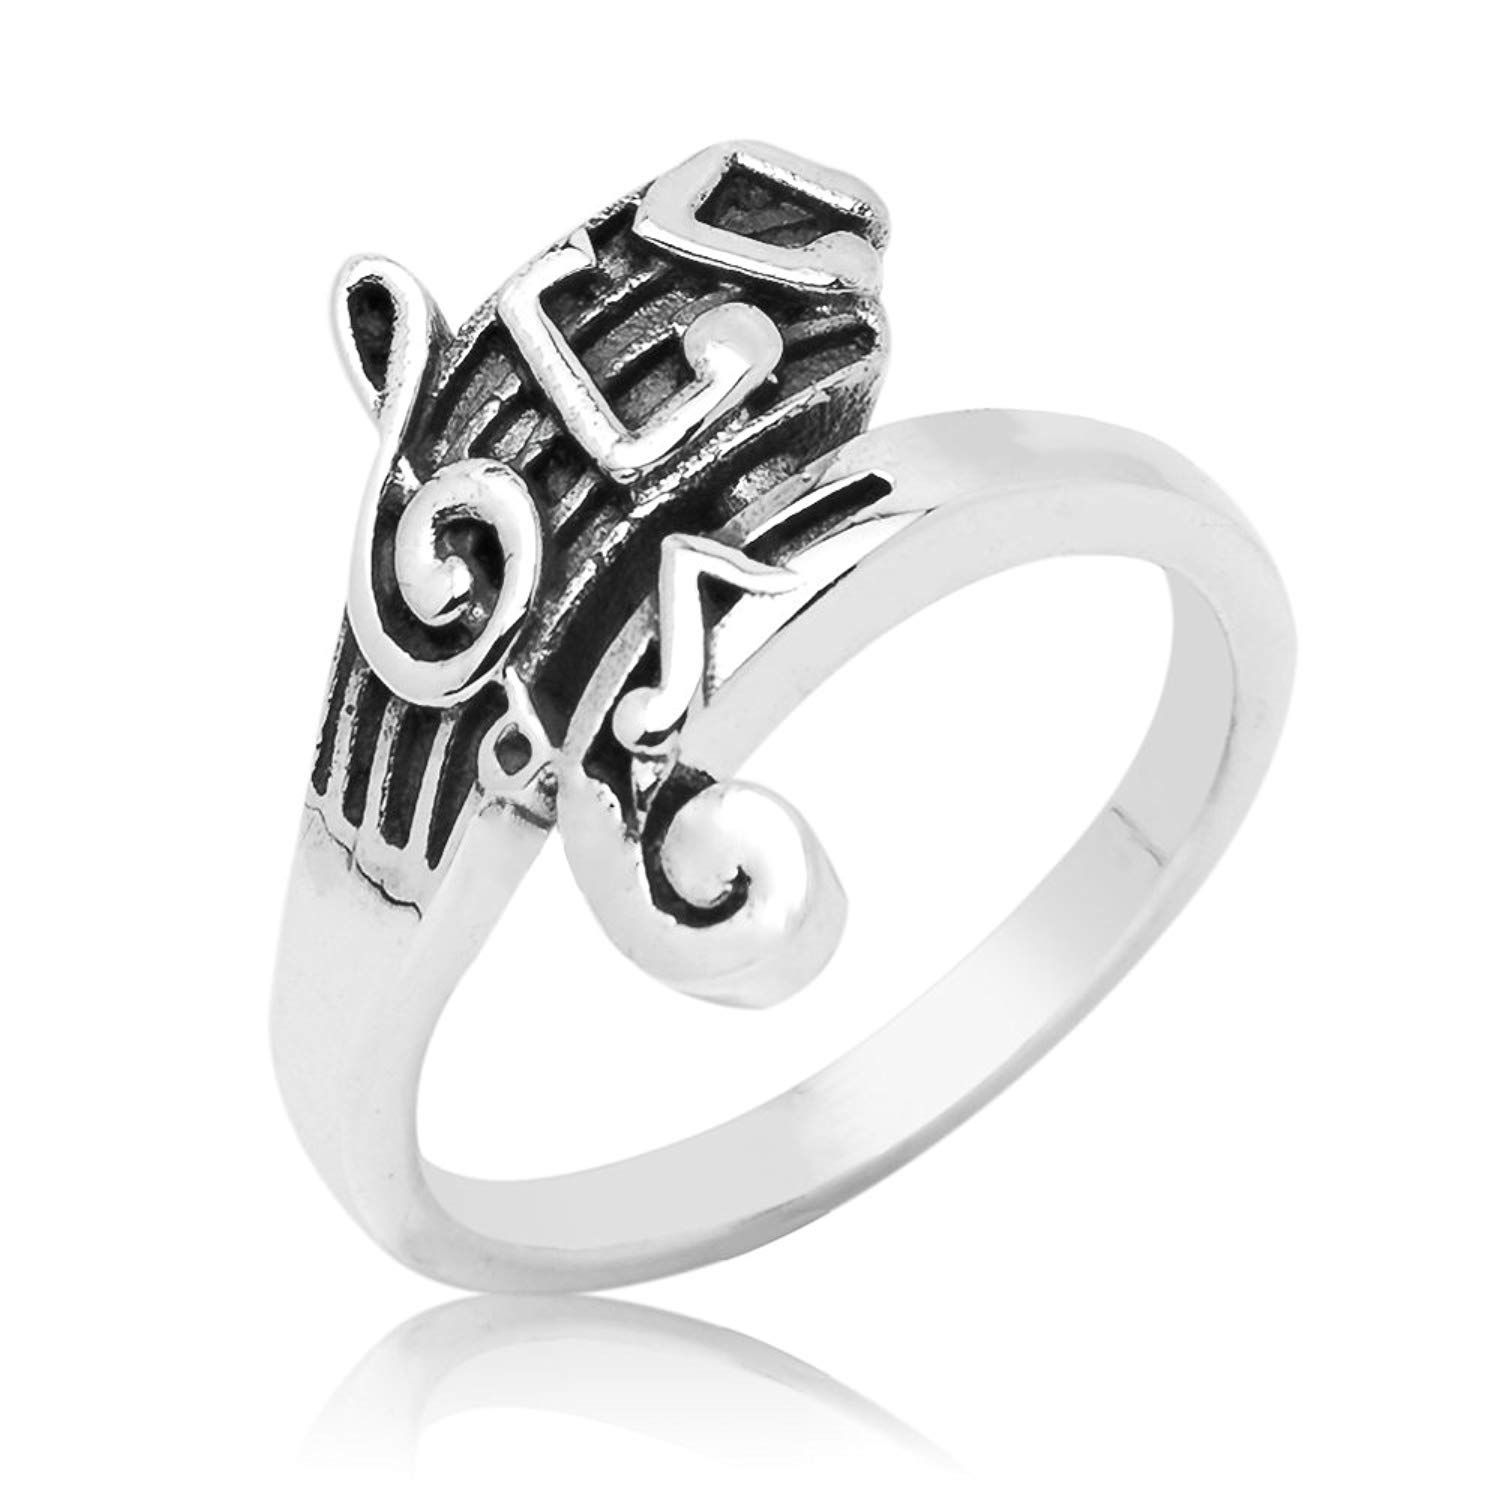 Music Note /& G-Clef Cz  .925 Sterling Silver Ring Sizes 4-10